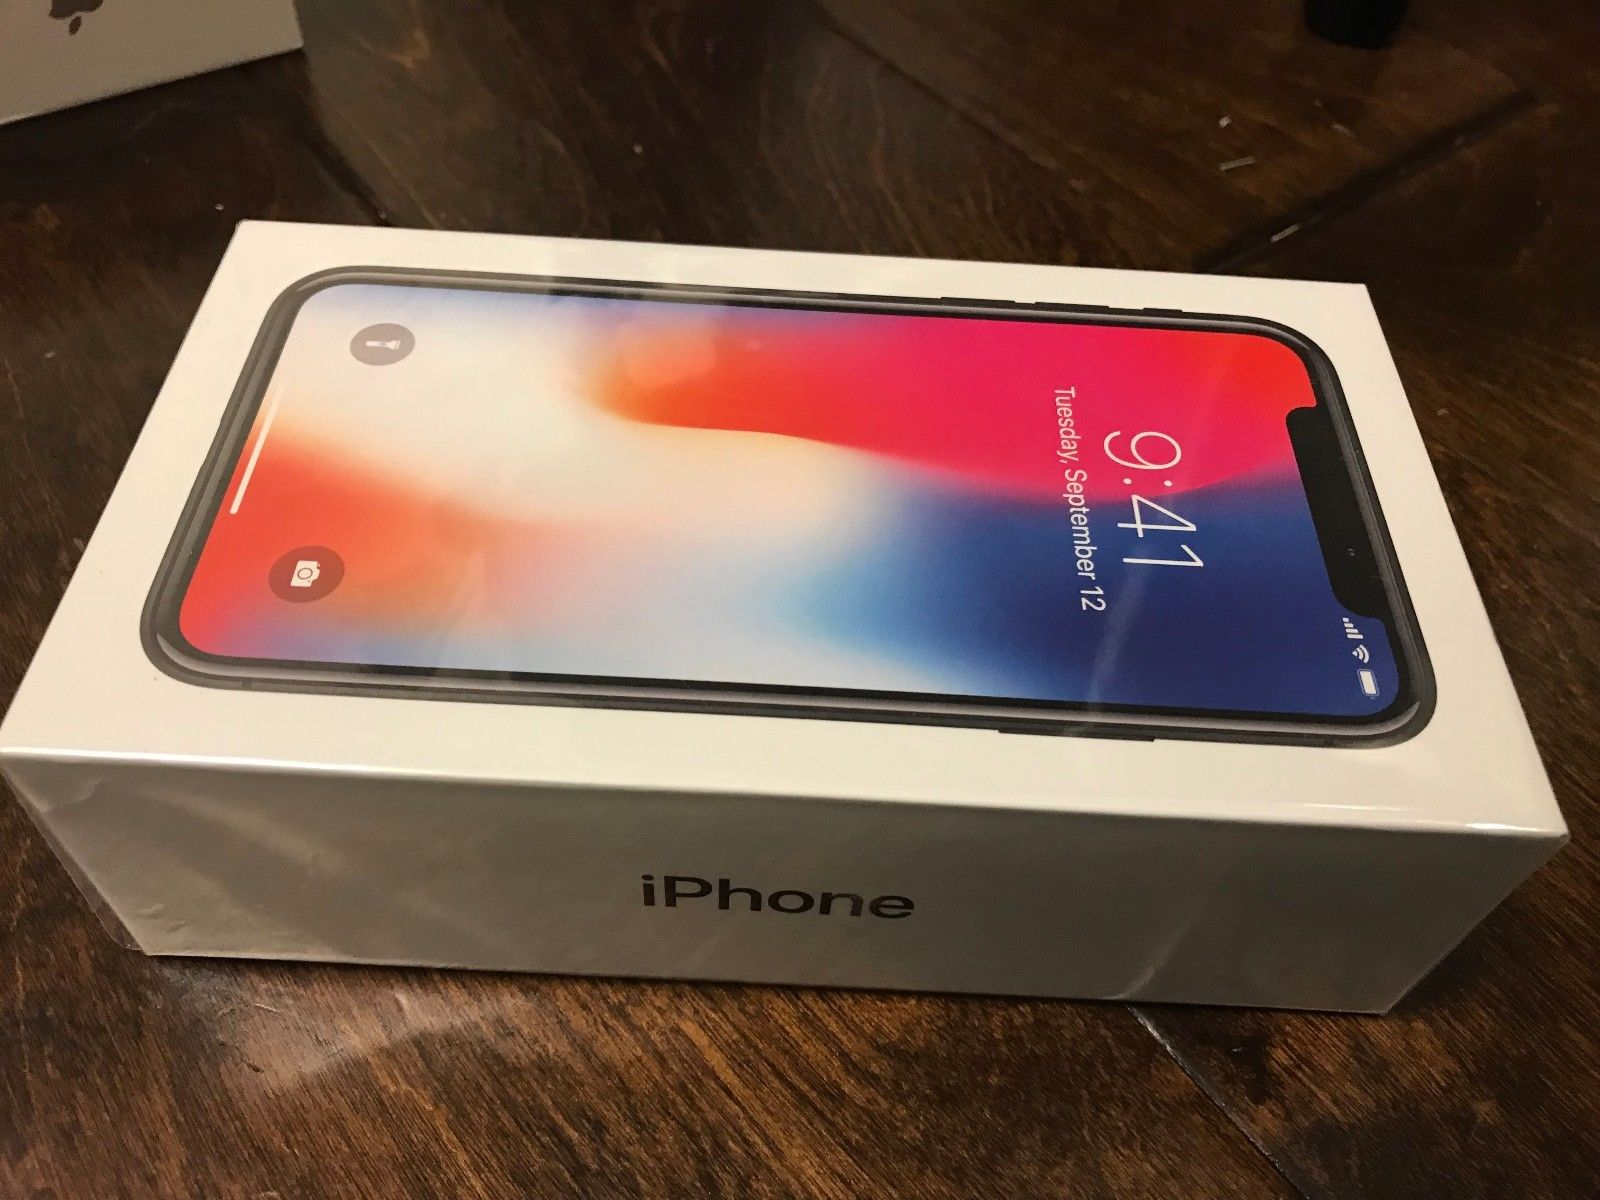 Apple iPhone X 64GB/256GB / Samsung S9 Plus /Samsung Note 8 / Antminer S9i 14th/s - WhatsApp +15797913520